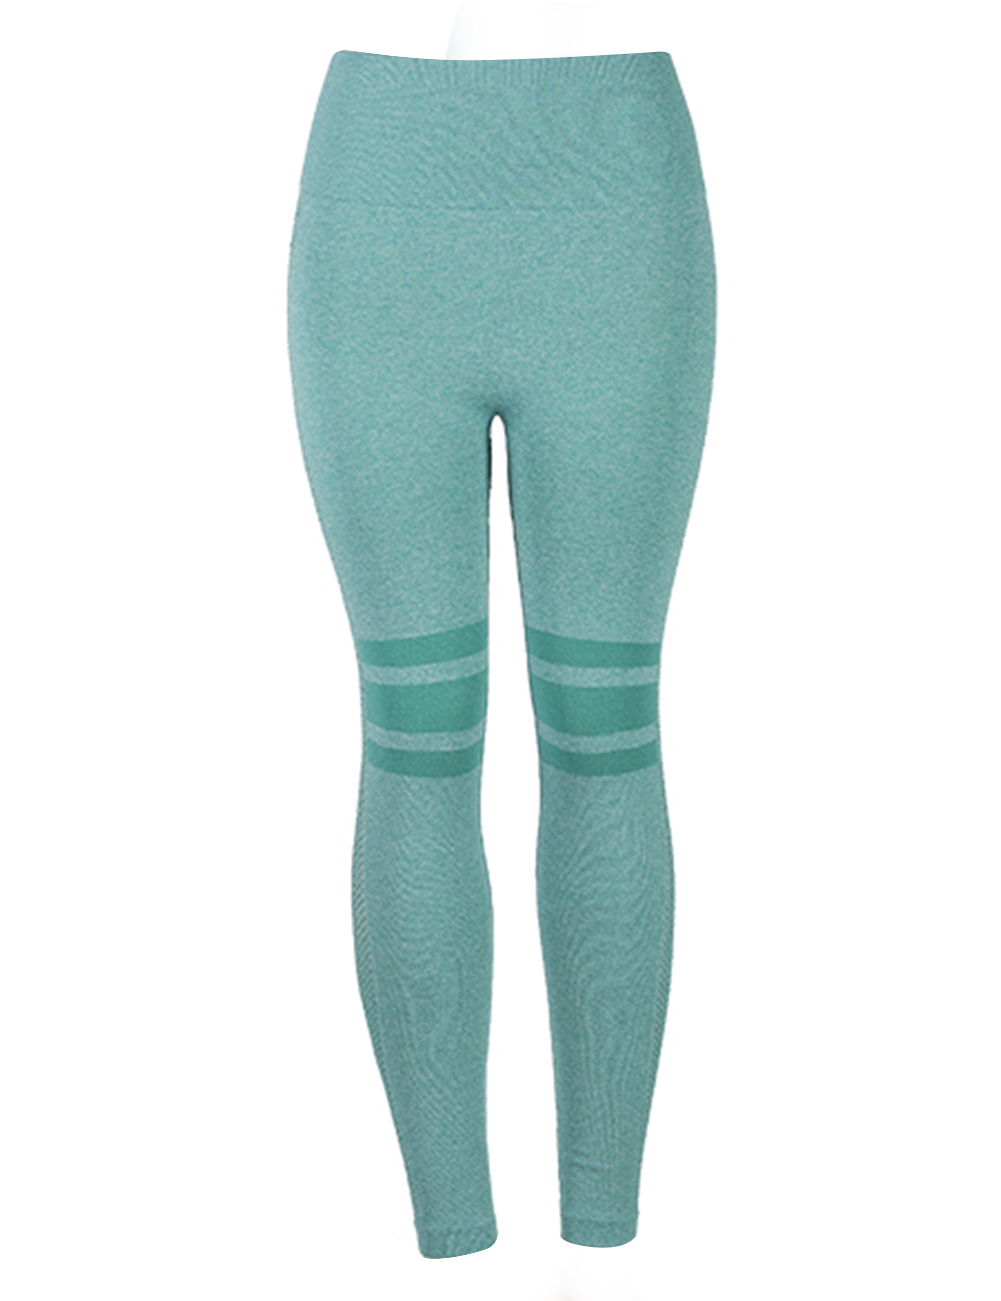 //cdn.affectcloud.com/hexinfashion/upload/imgs/ActiveWear/Yoga_Legging/YD190109-GN3/YD190109-GN3-201911215dd5ecaa04632.jpg